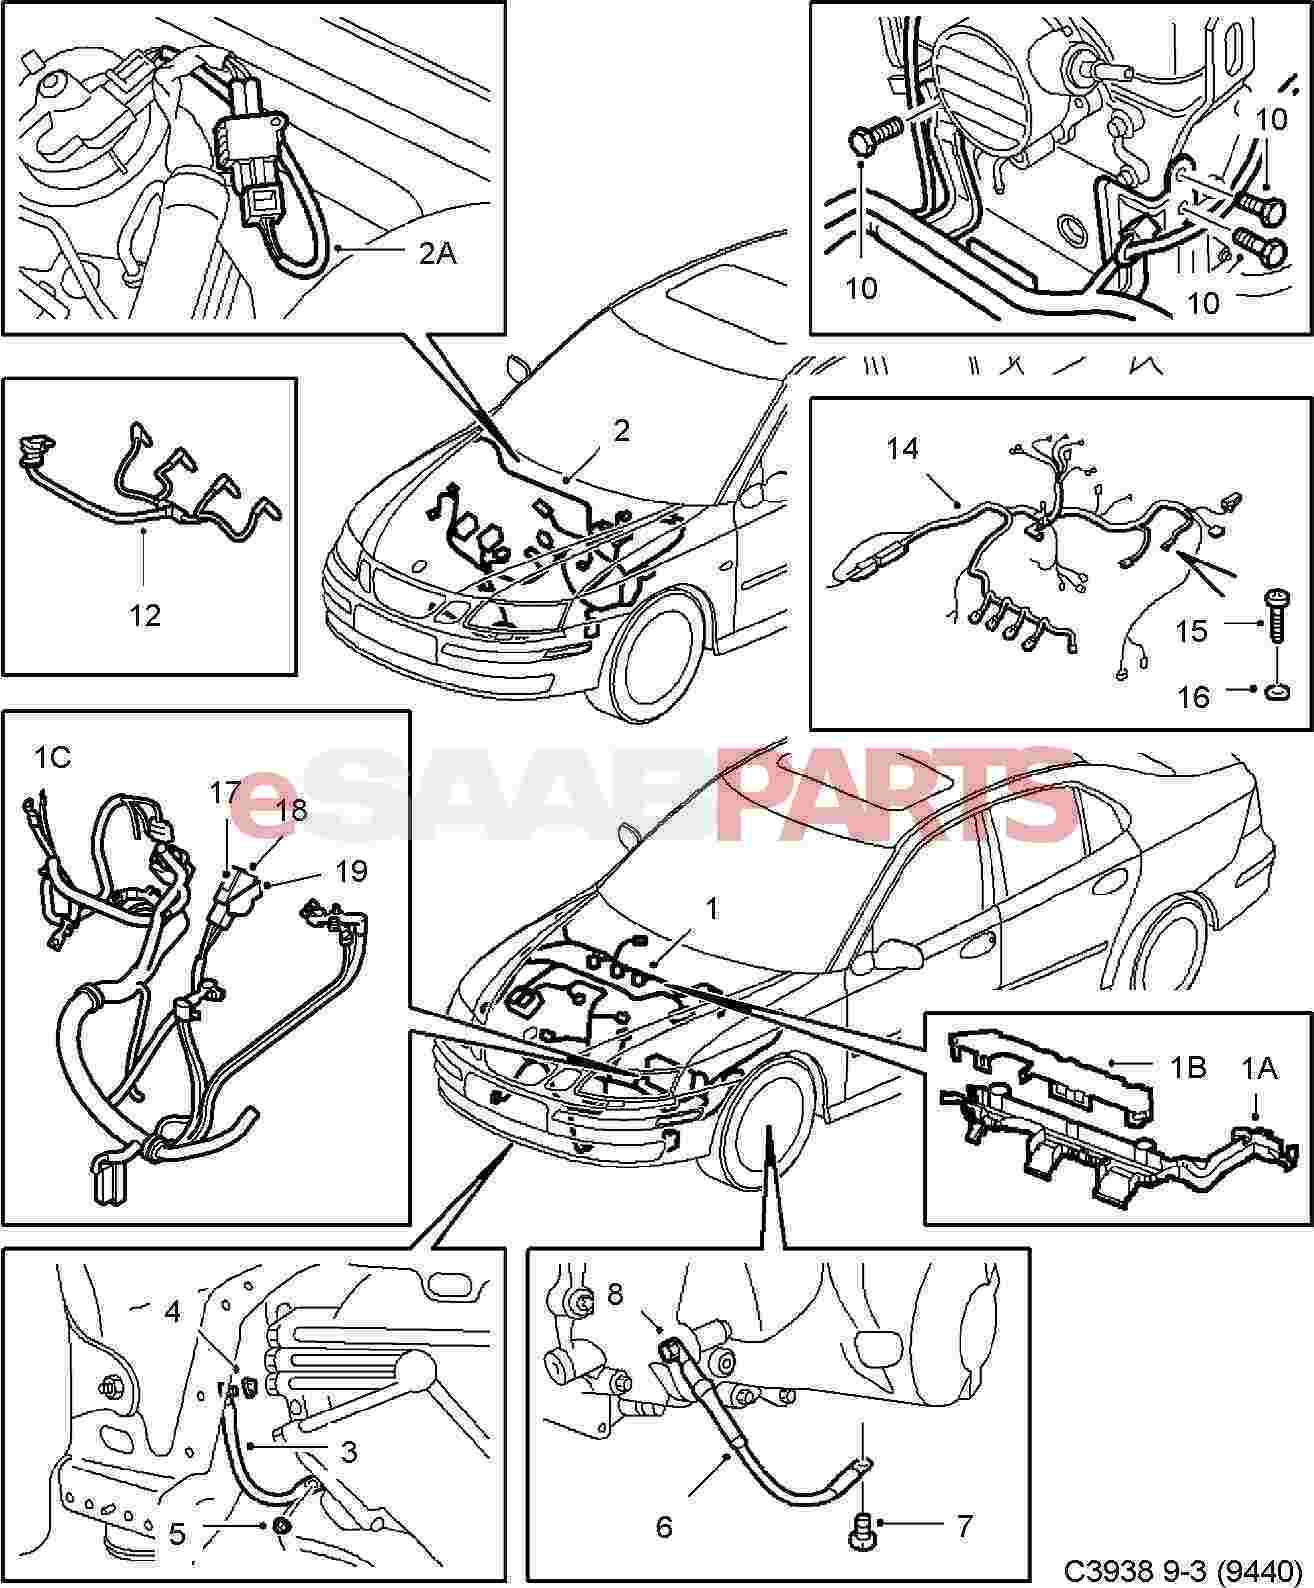 12785584] saab battery cable genuine saab parts from esaabparts com saab 9-3 audio wiring diagram saab wiring diagram 9 3 2005 Saab 9 5 23T Fuse Box Diagram Saab 9-3 Wiring-Diagram Sid Unit Temp Sensor 2007 saab 9-3 wiring diagram